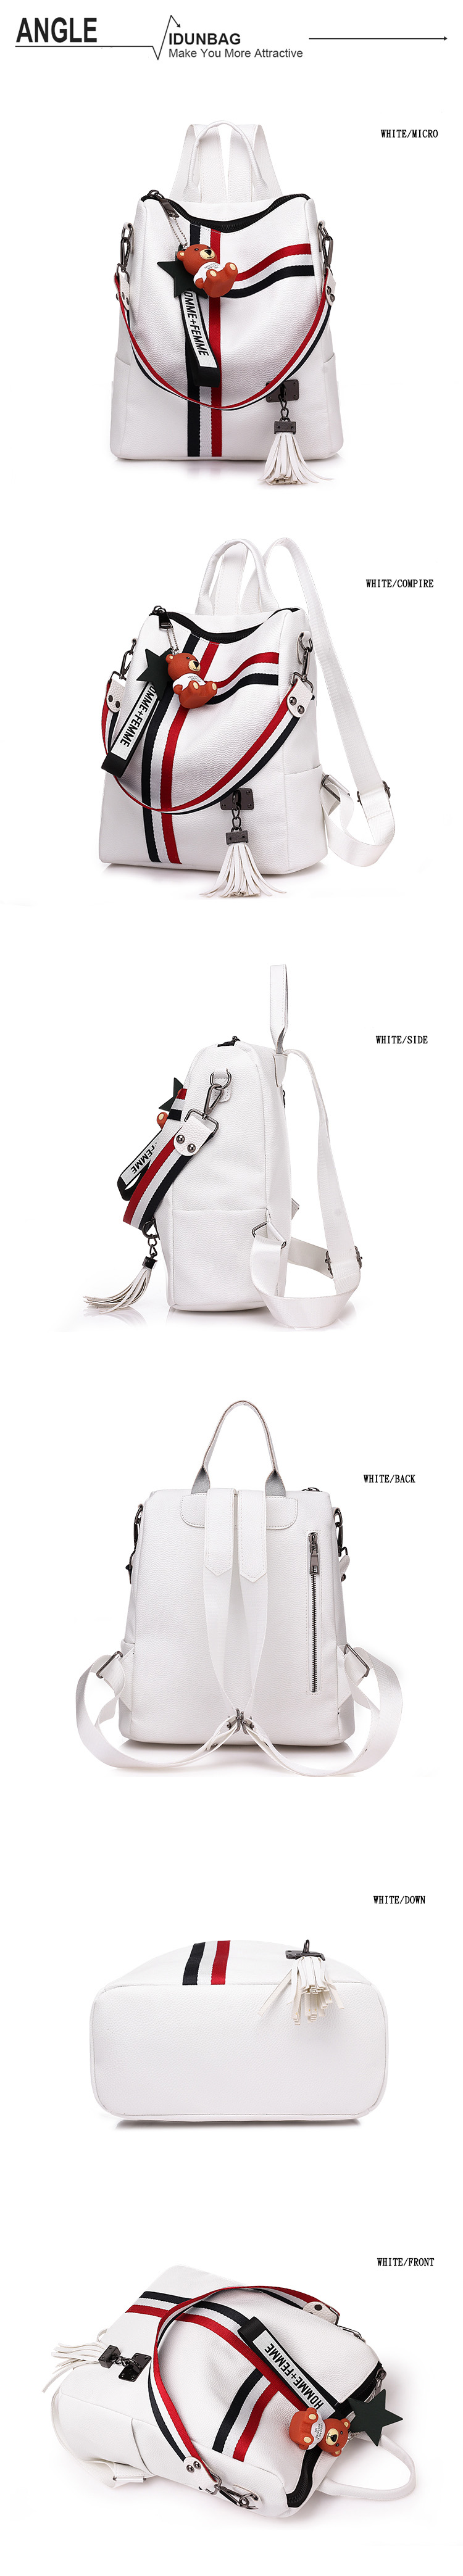 H2f89705e4995419ab6e2195ba3891524r bags for women 2019 new retro fashion zipper ladies backpack PU Leather high quality school bag shoulder bag for youth bags